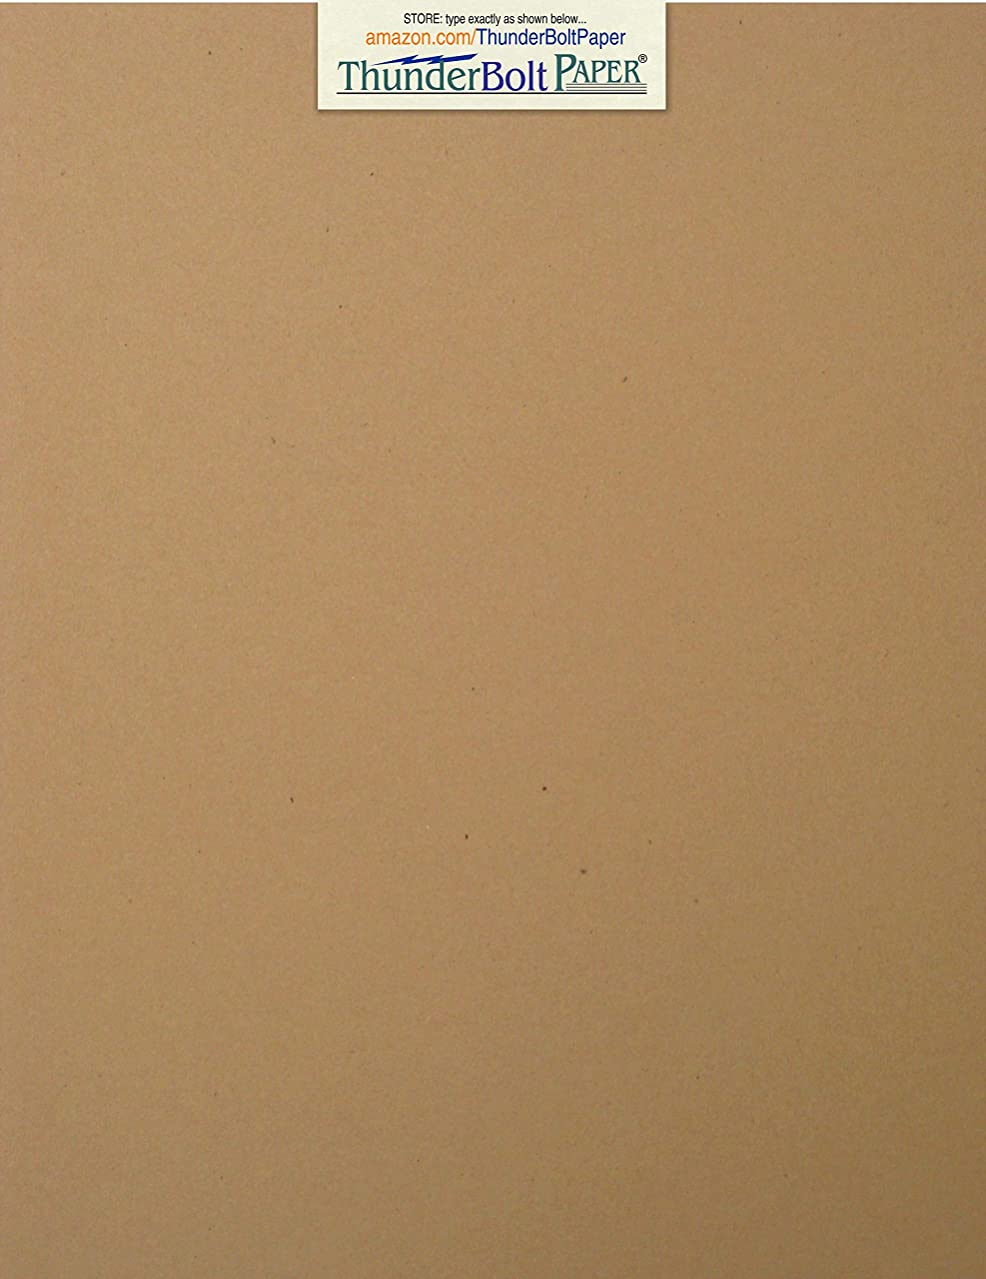 150 Brown Kraft Fiber 28/70 Pound Text (Not Card/Cover) Paper Sheets - 8.5